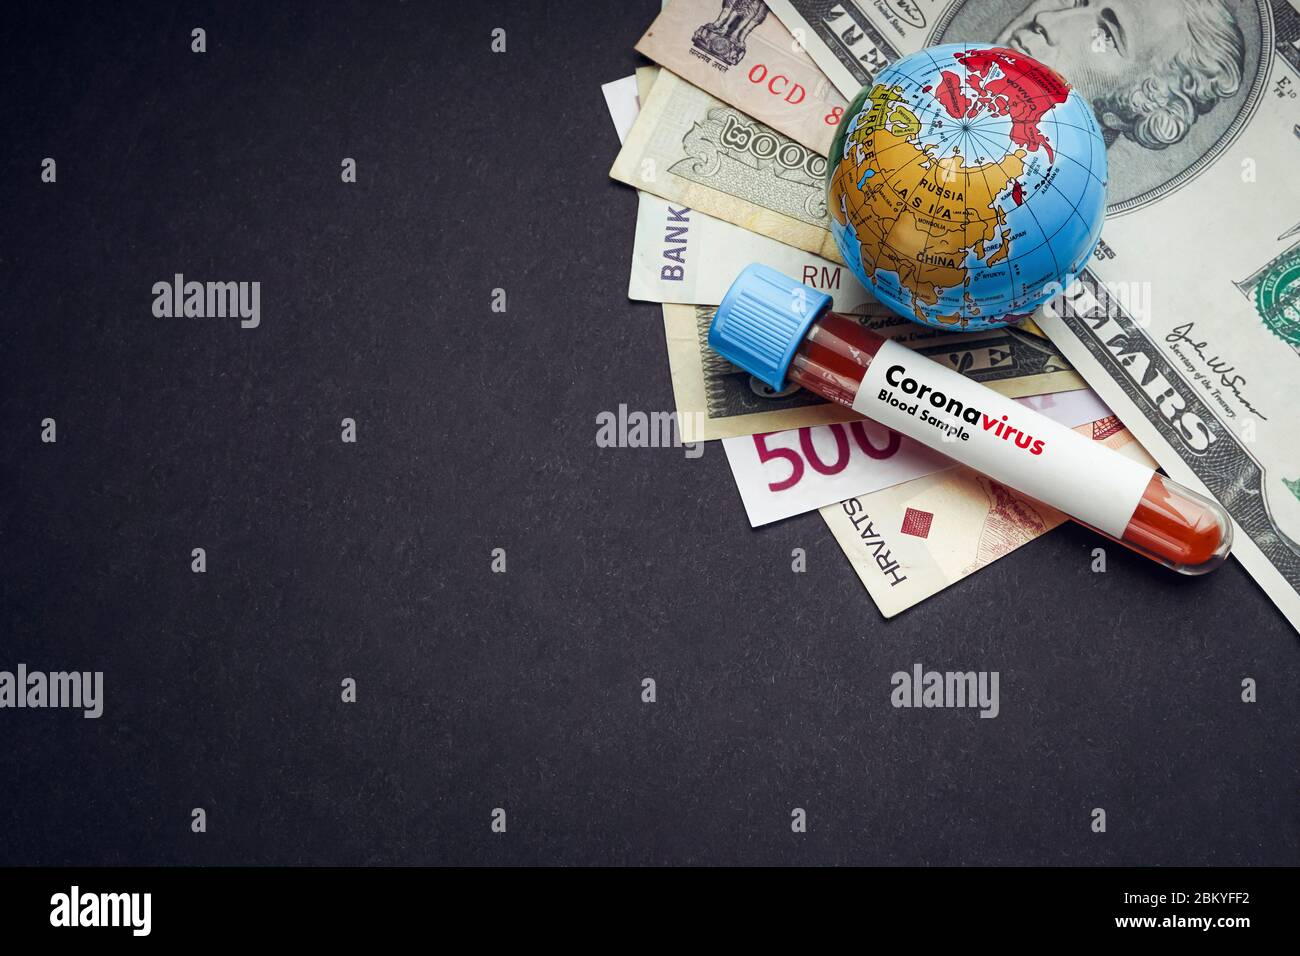 CORONAVIRUS text with currency banknotes, world globe and blood test vacuum tube on black background. Covid-19 or Coronavirus Concept. Copy space Stock Photo